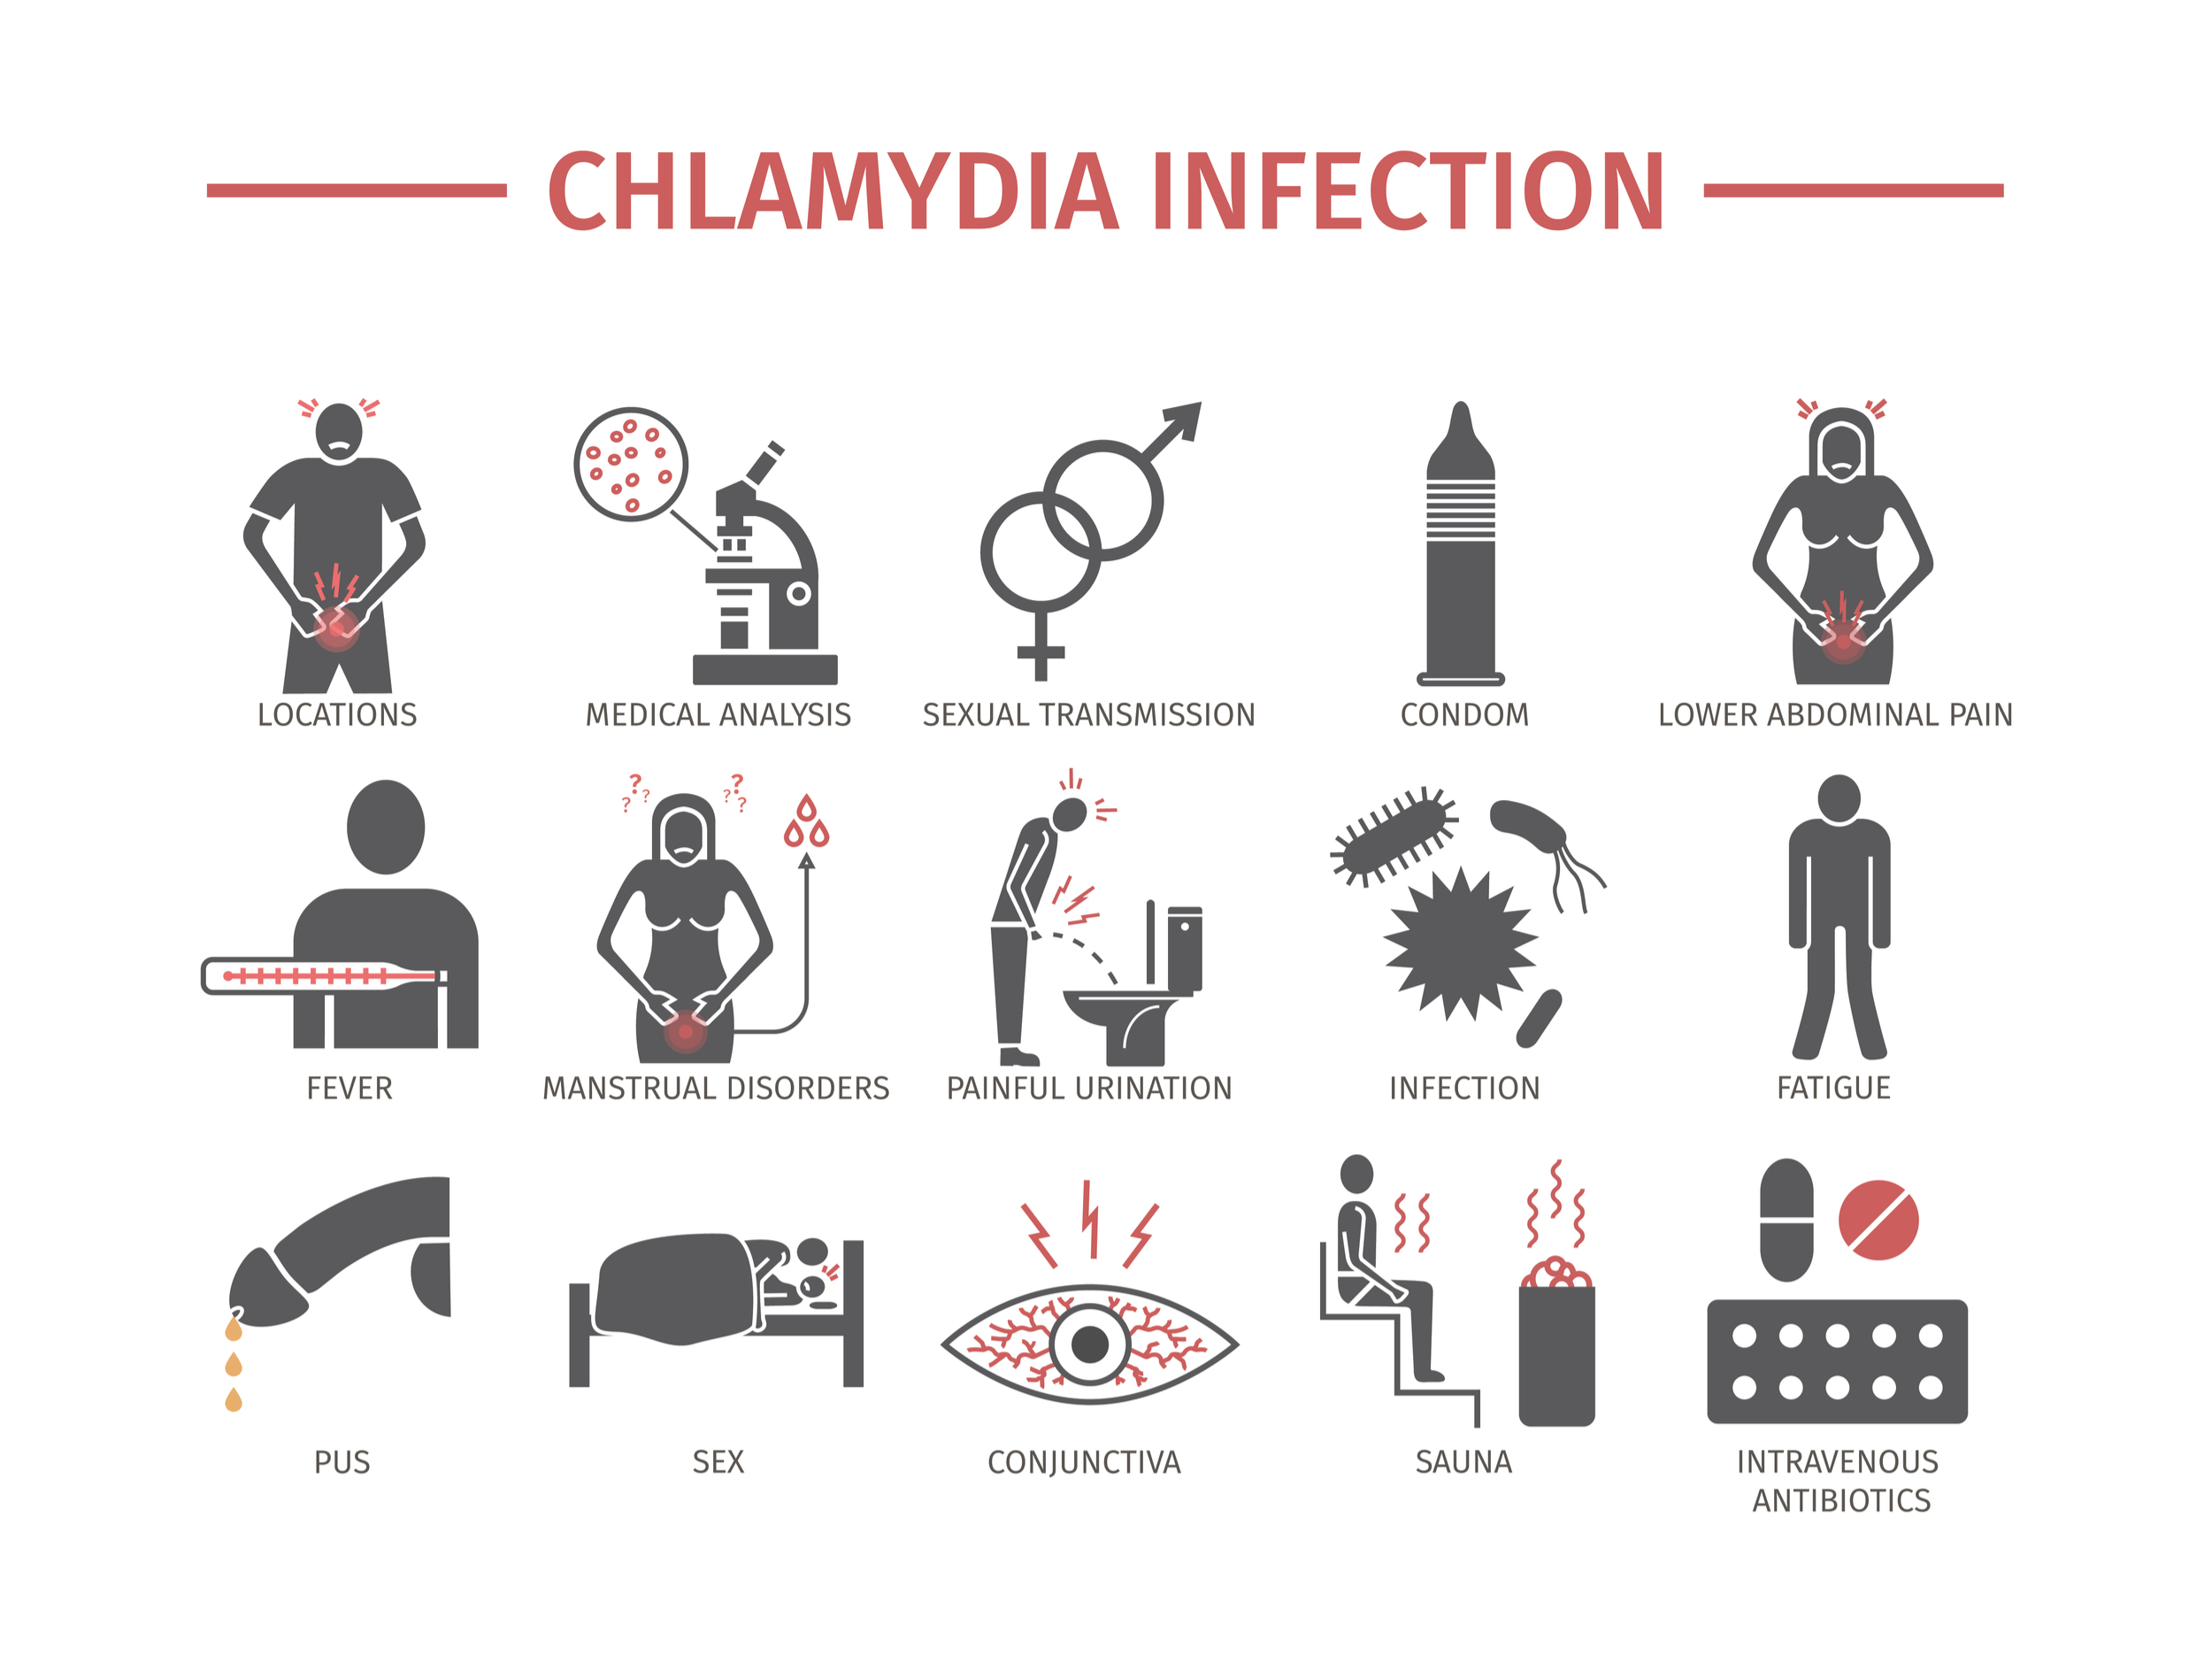 chlamydia images infectious diseases pictures sydney for presentations melbourne